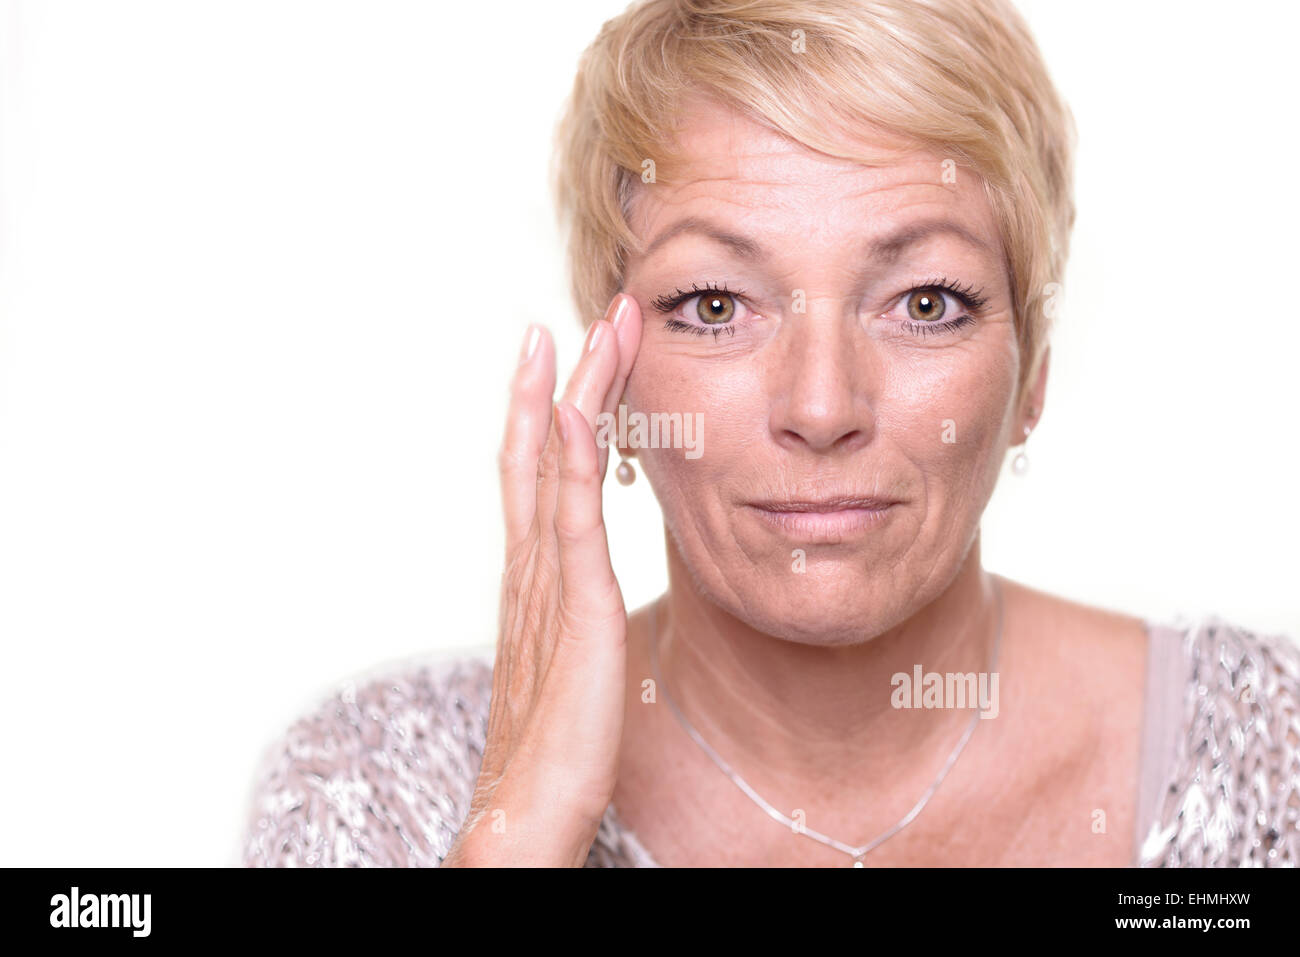 Attractive senior blond woman with a wide-eyed expression and her glasses on her head checking her complexion - Stock Image